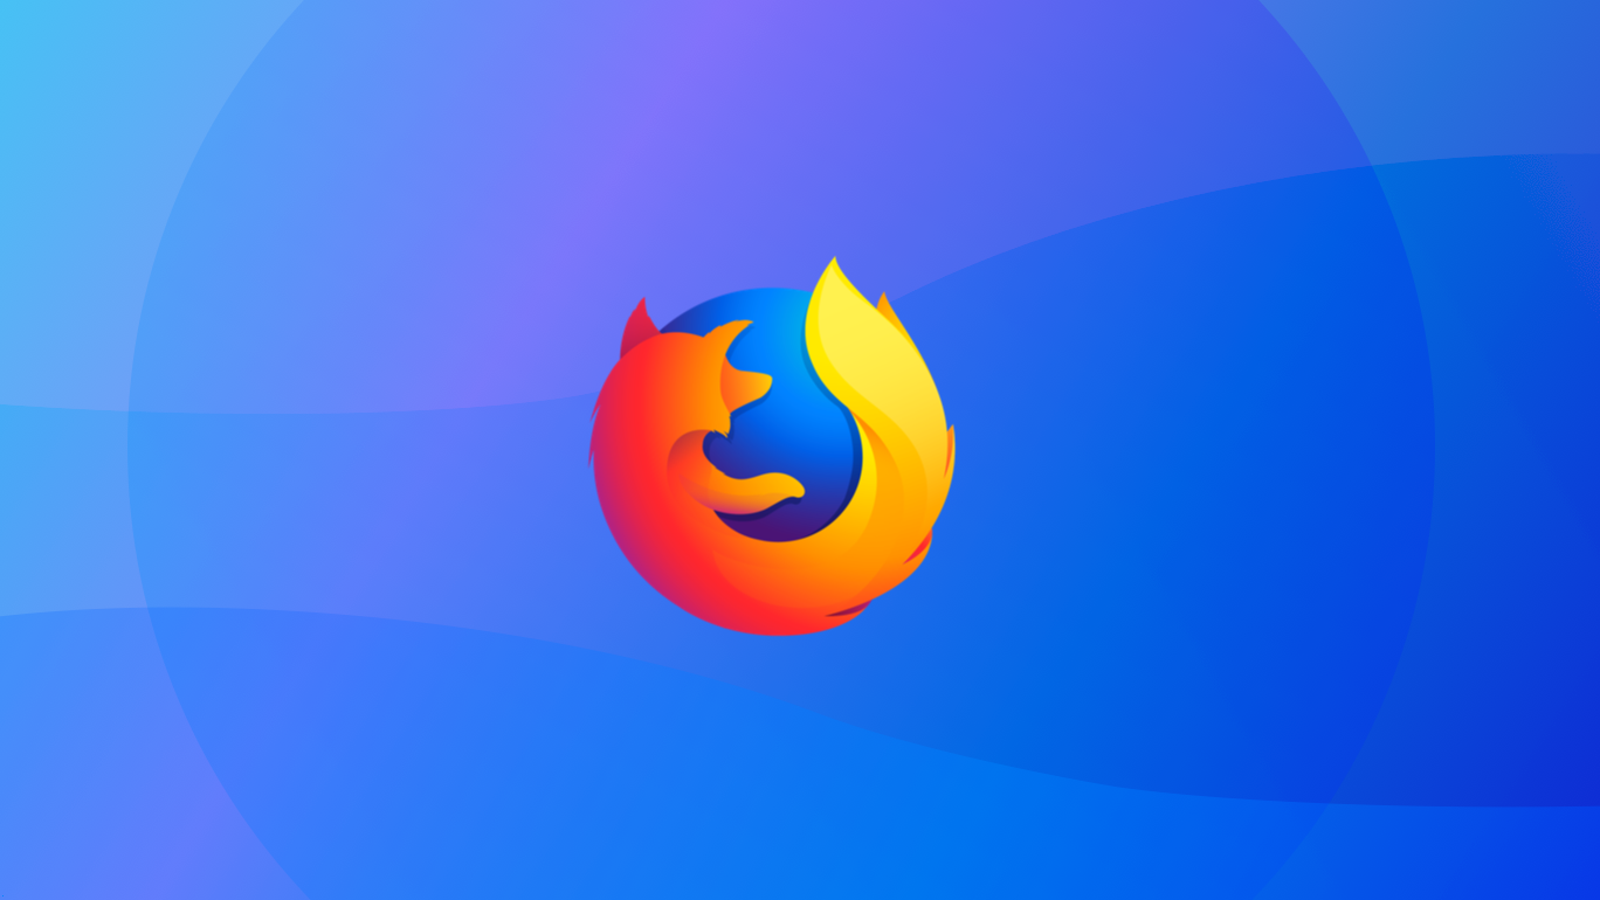 Firefox Deploys a Slew of New Privacy Features, Taking Aim at Facebook and Invasive Online Trackers - Gizmodo